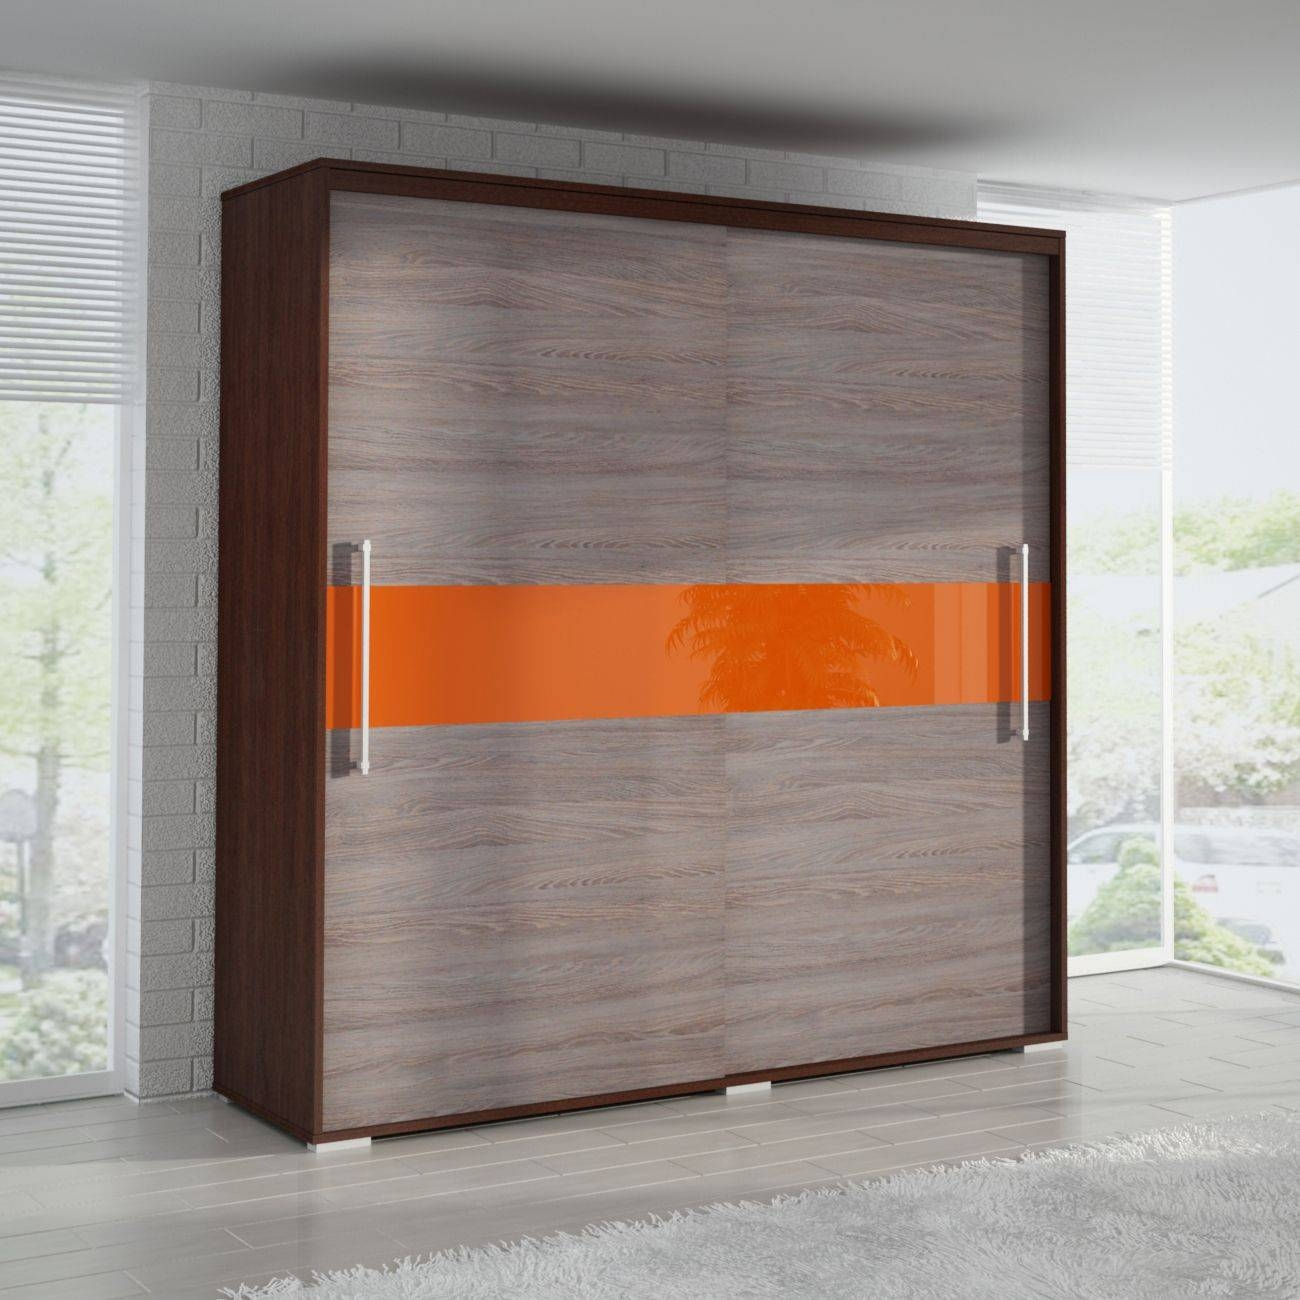 2 Door Sliding Wardrobe Orl200-2Dw regarding 2 Sliding Door Wardrobes (Image 1 of 15)